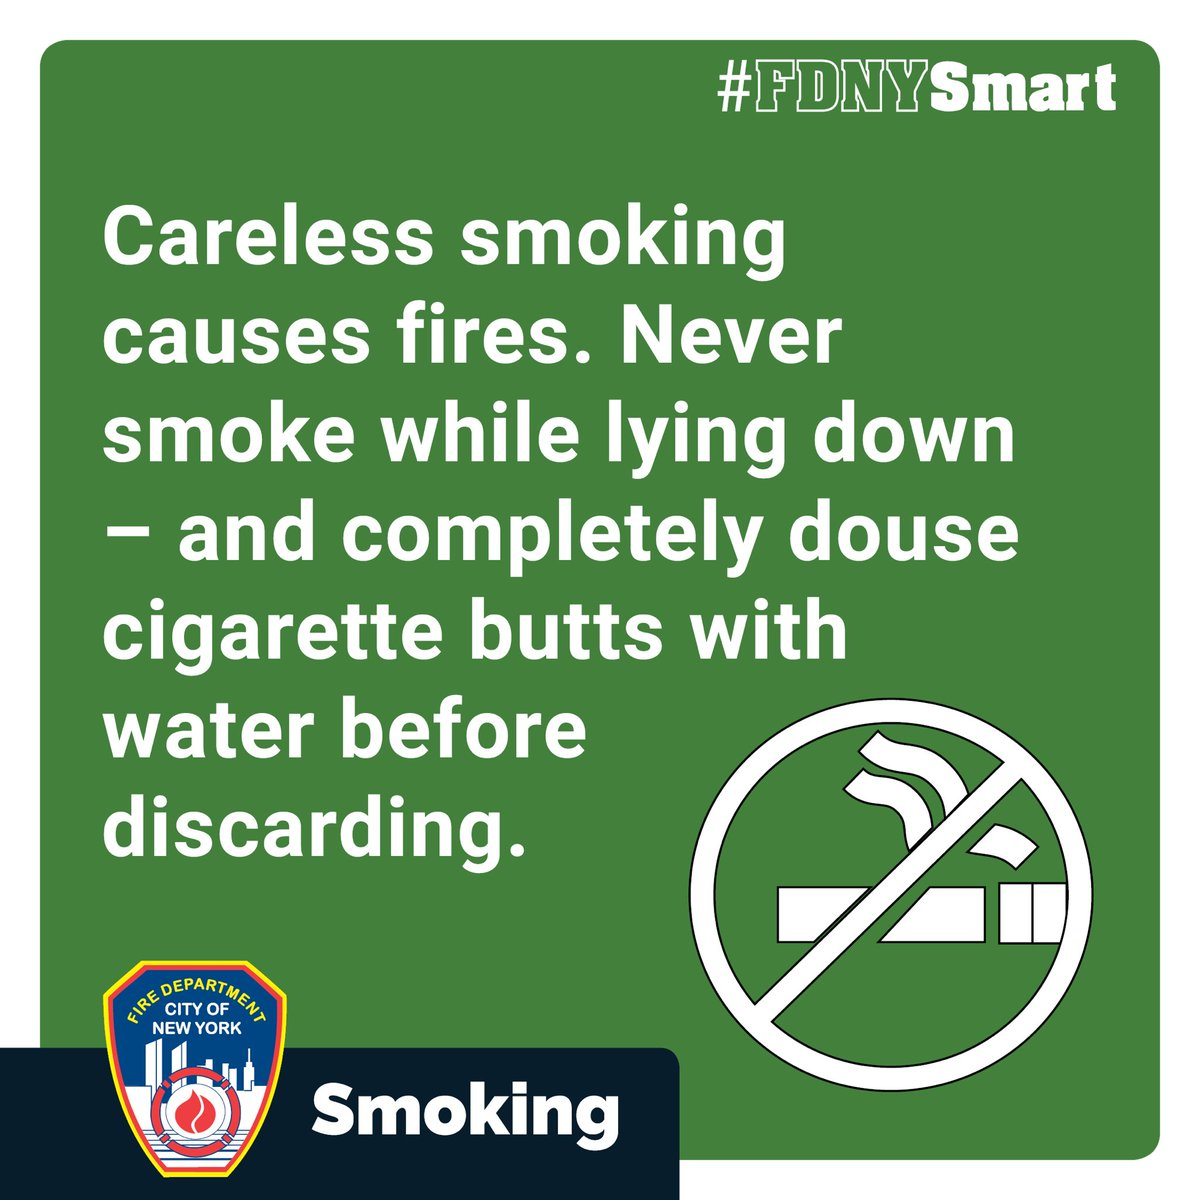 New Yorkers - careless smoking was the third-highest cause of fatal fires in NYC last year. If you or others in your home smoke, help prevent fires before they start by following these #FDNYSmart tips. See more ways to keep you and your family safe at